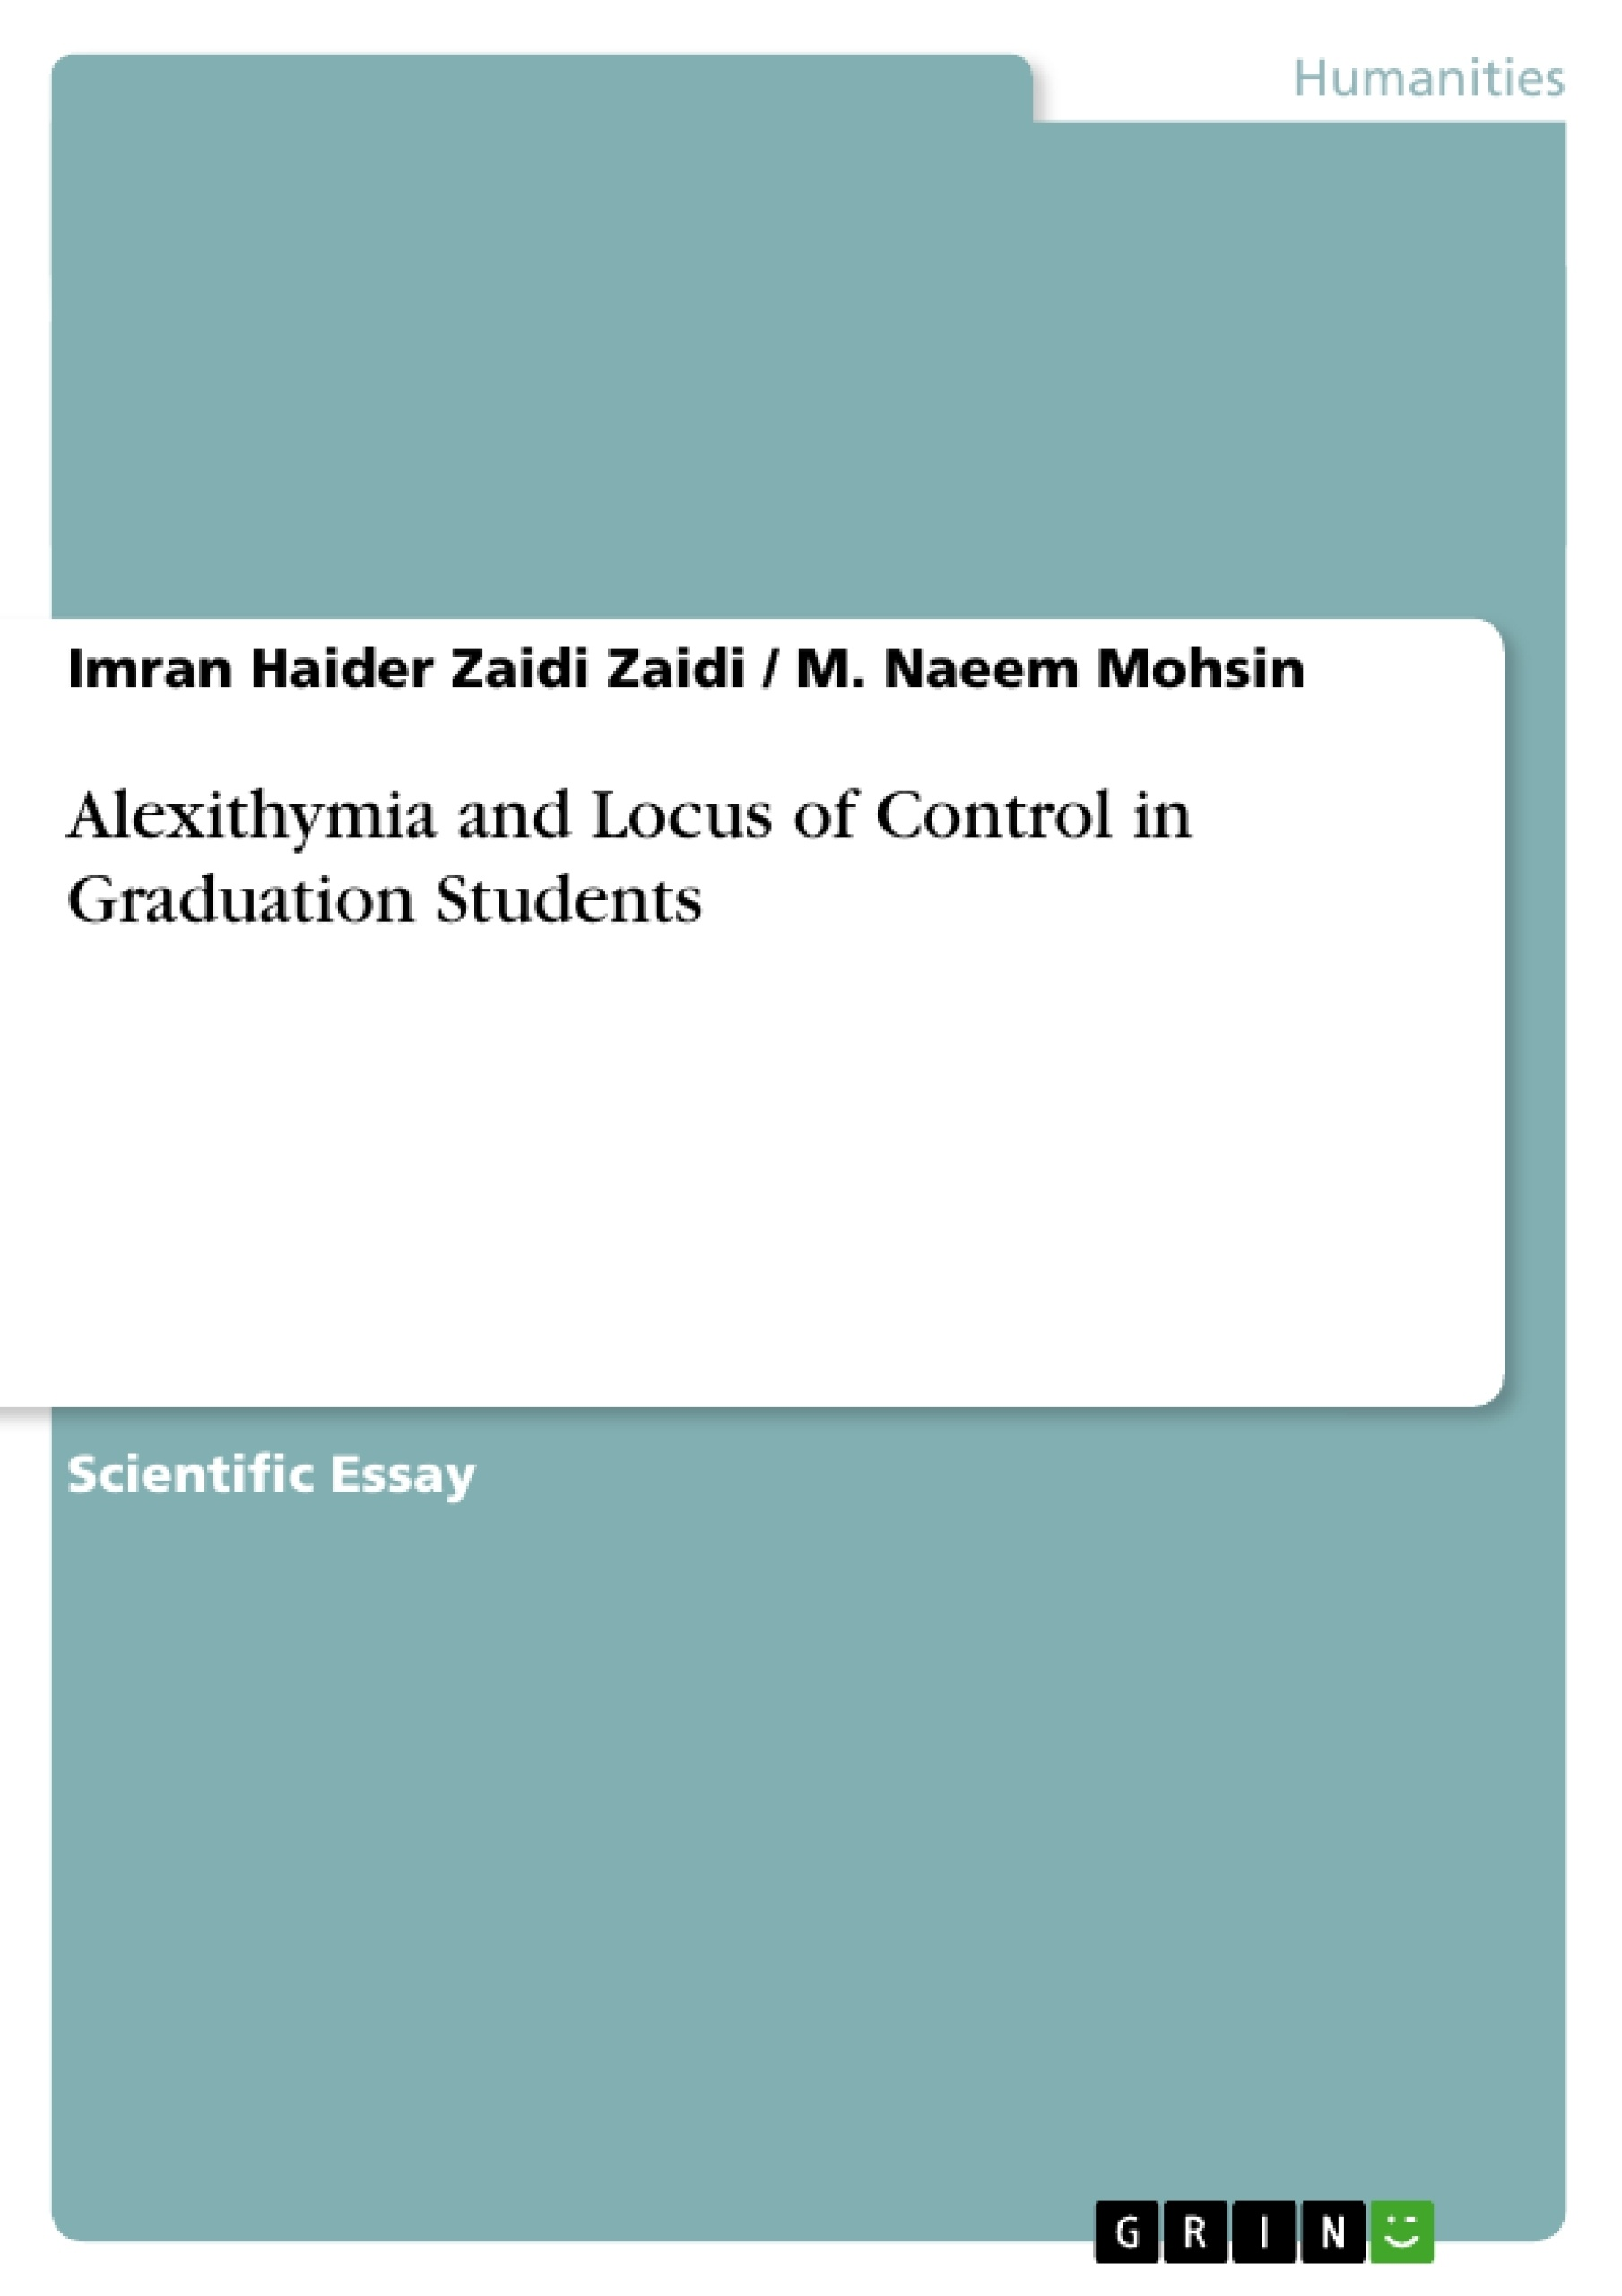 Title: Alexithymia and Locus of Control in Graduation Students